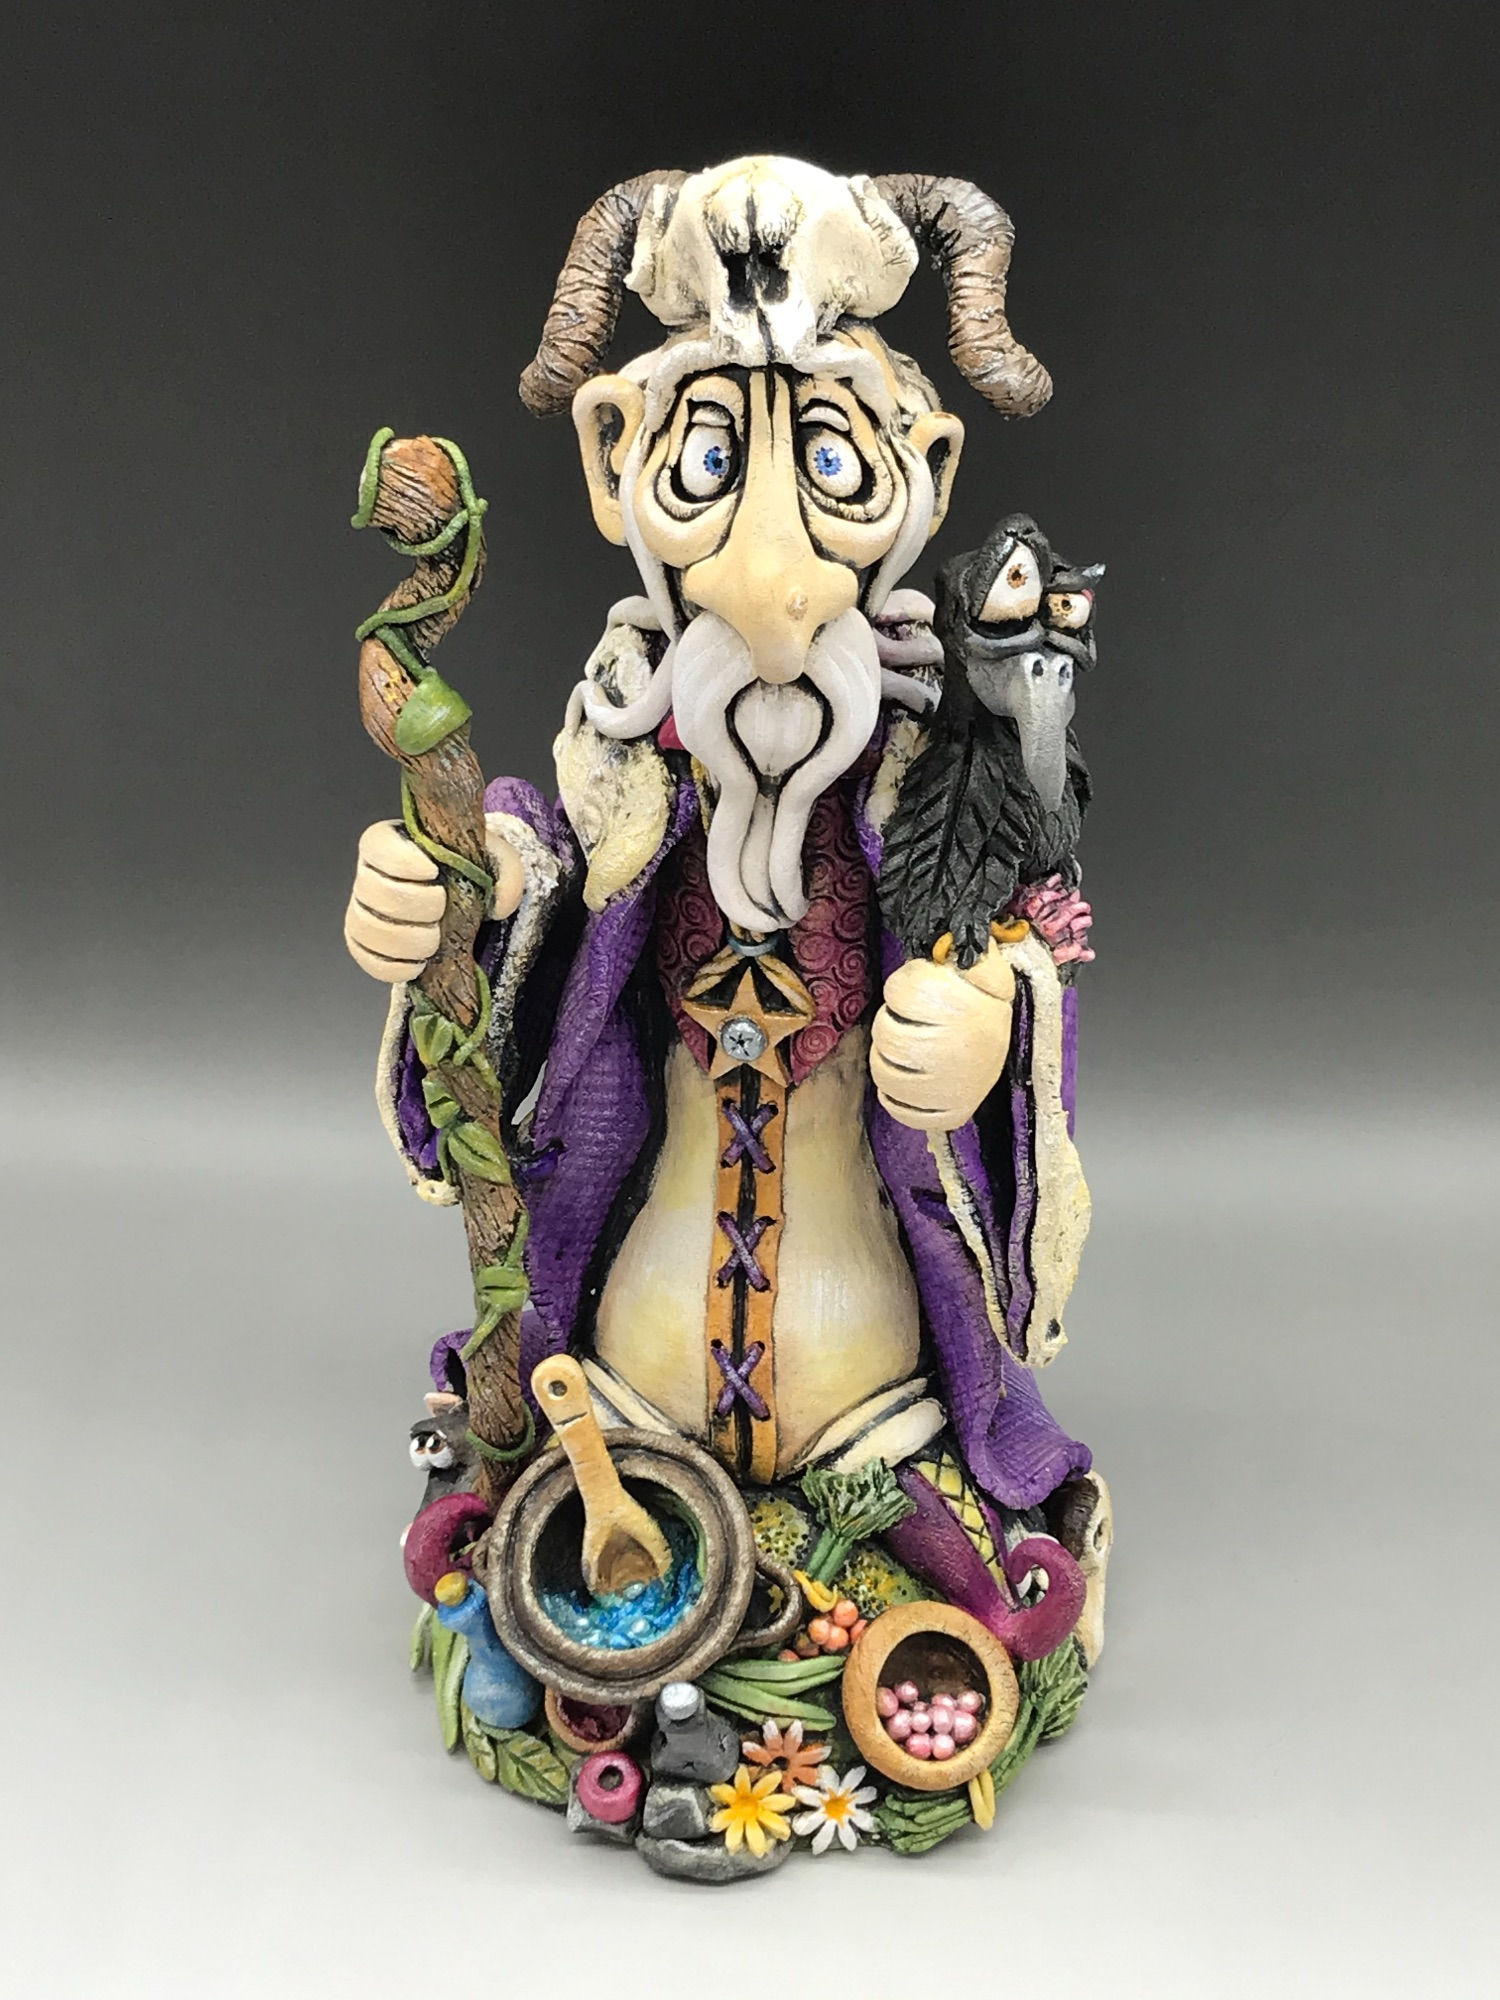 Druid Sculpture ceramic